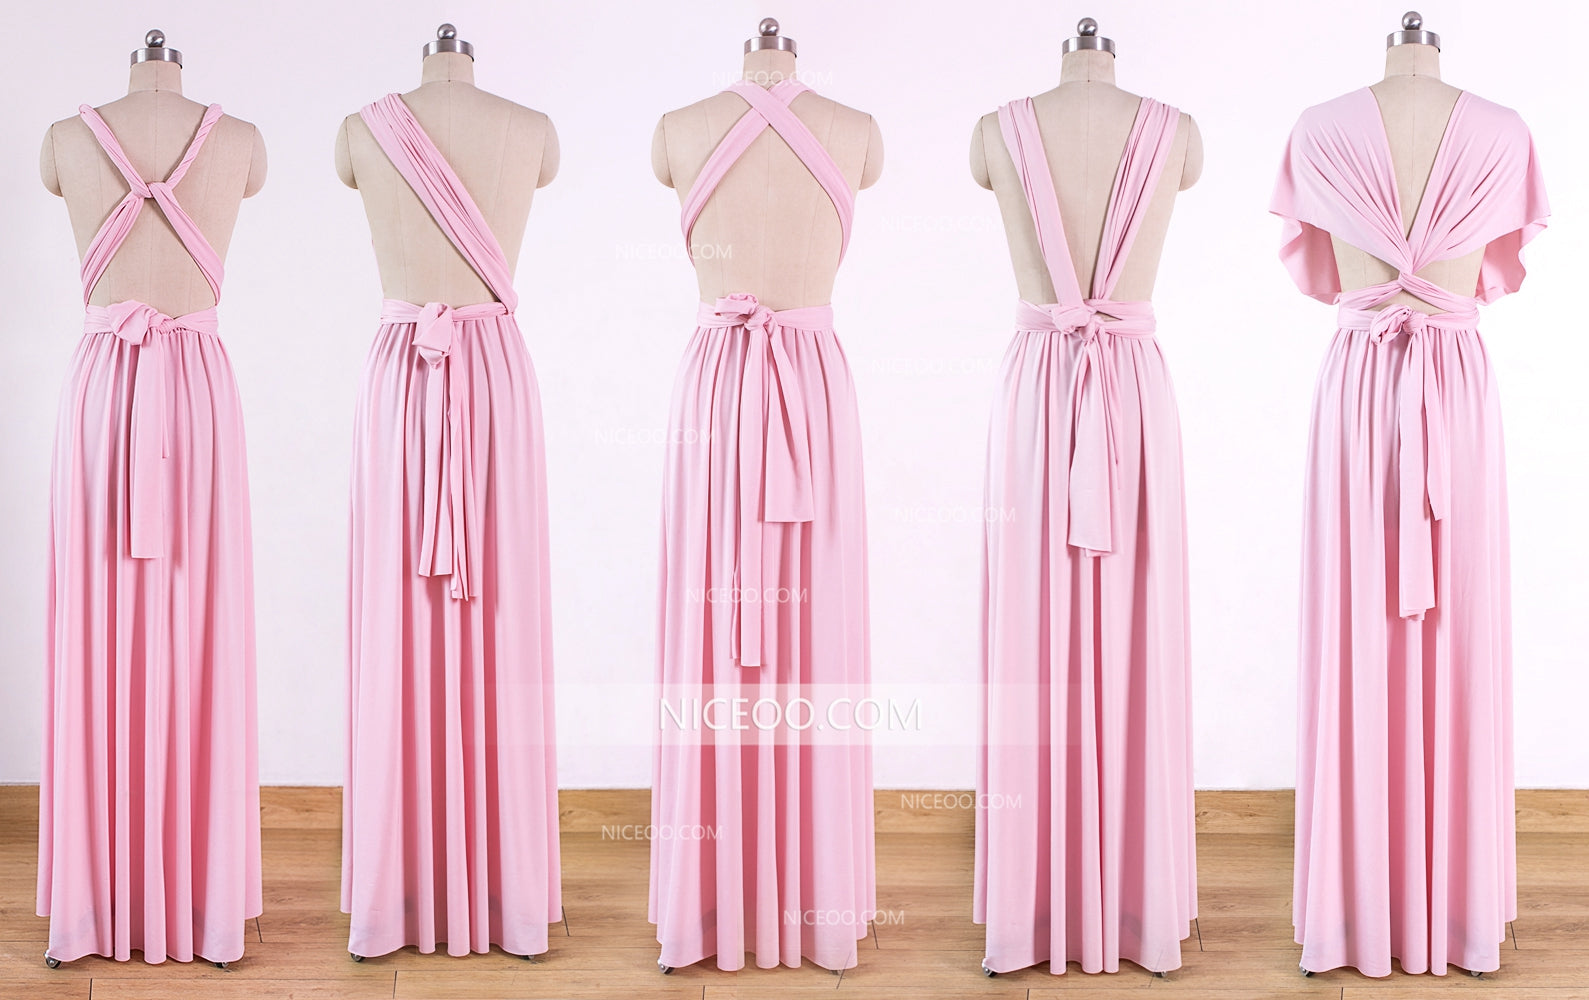 Pink Maxi Infinity Bridesmaid Dresses Convertible Dresses Multiway Wr Niceoo